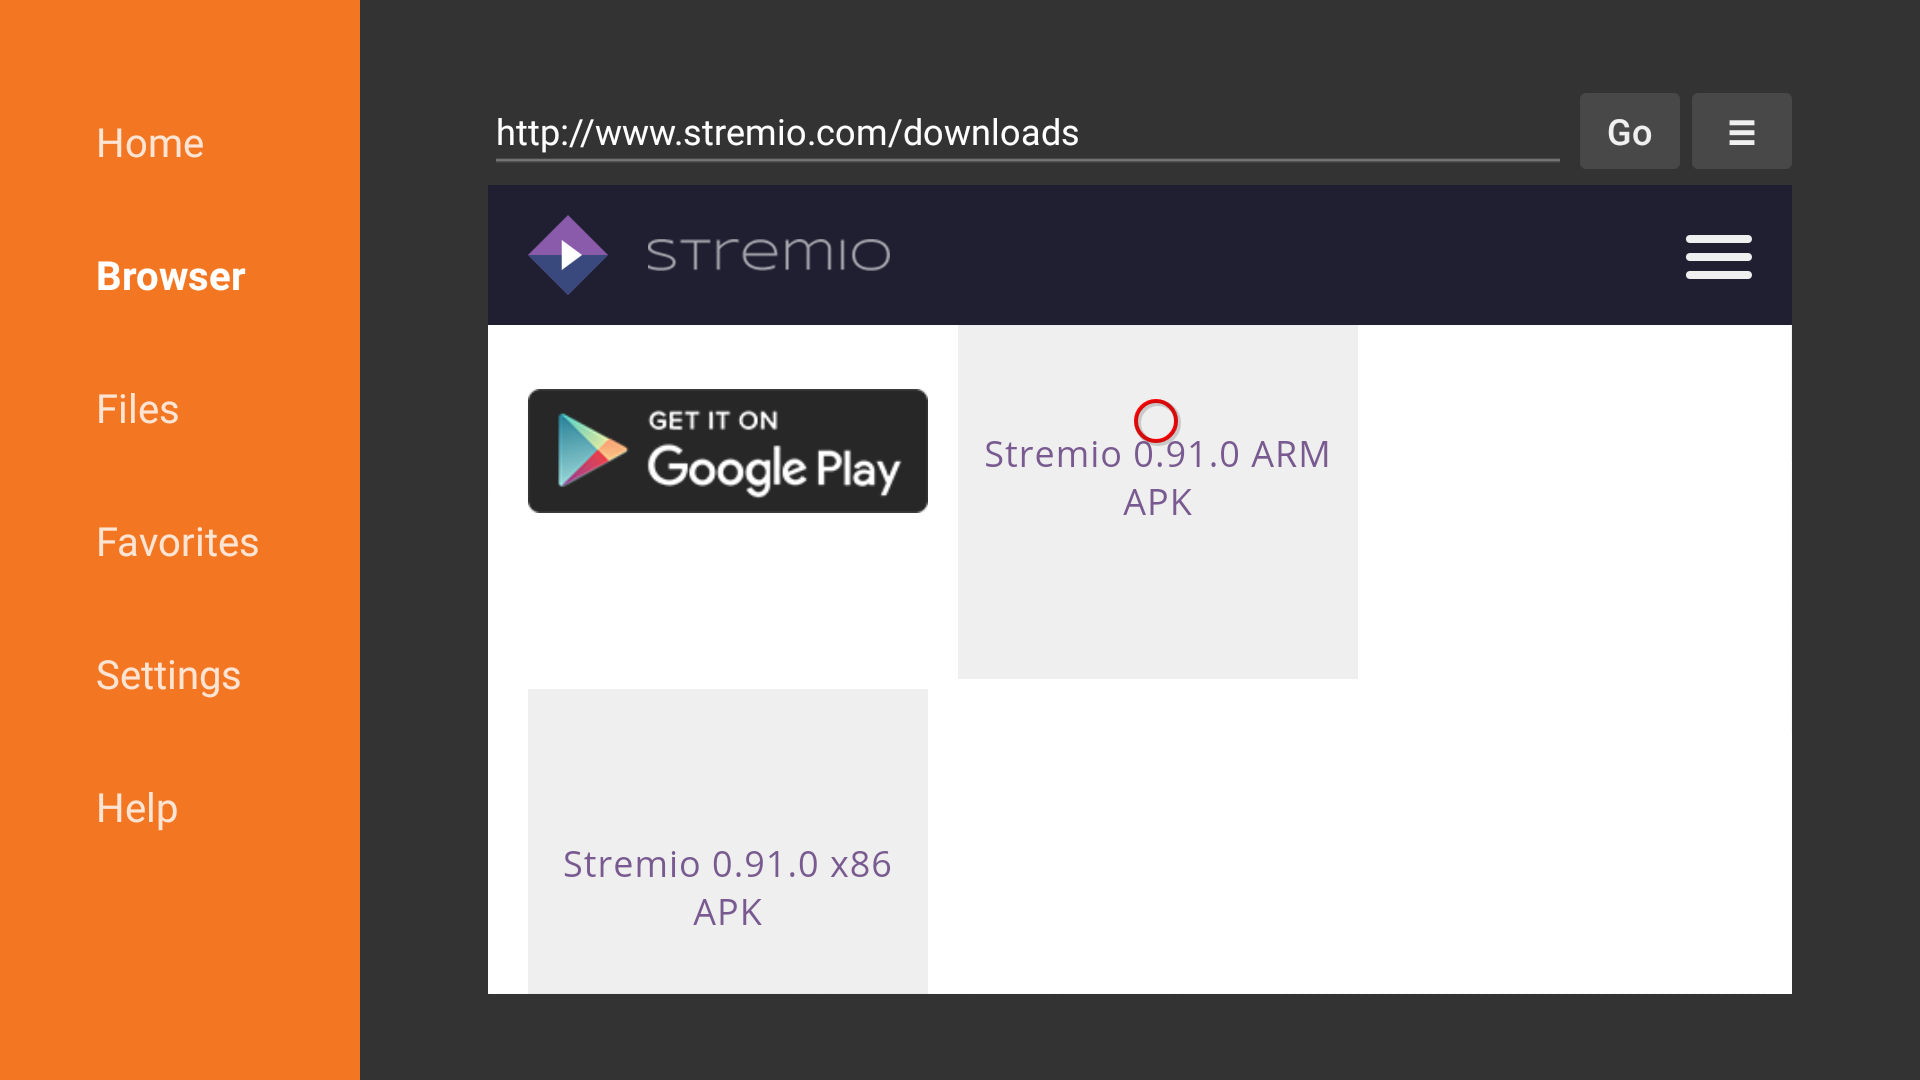 how to download stremio on firestick